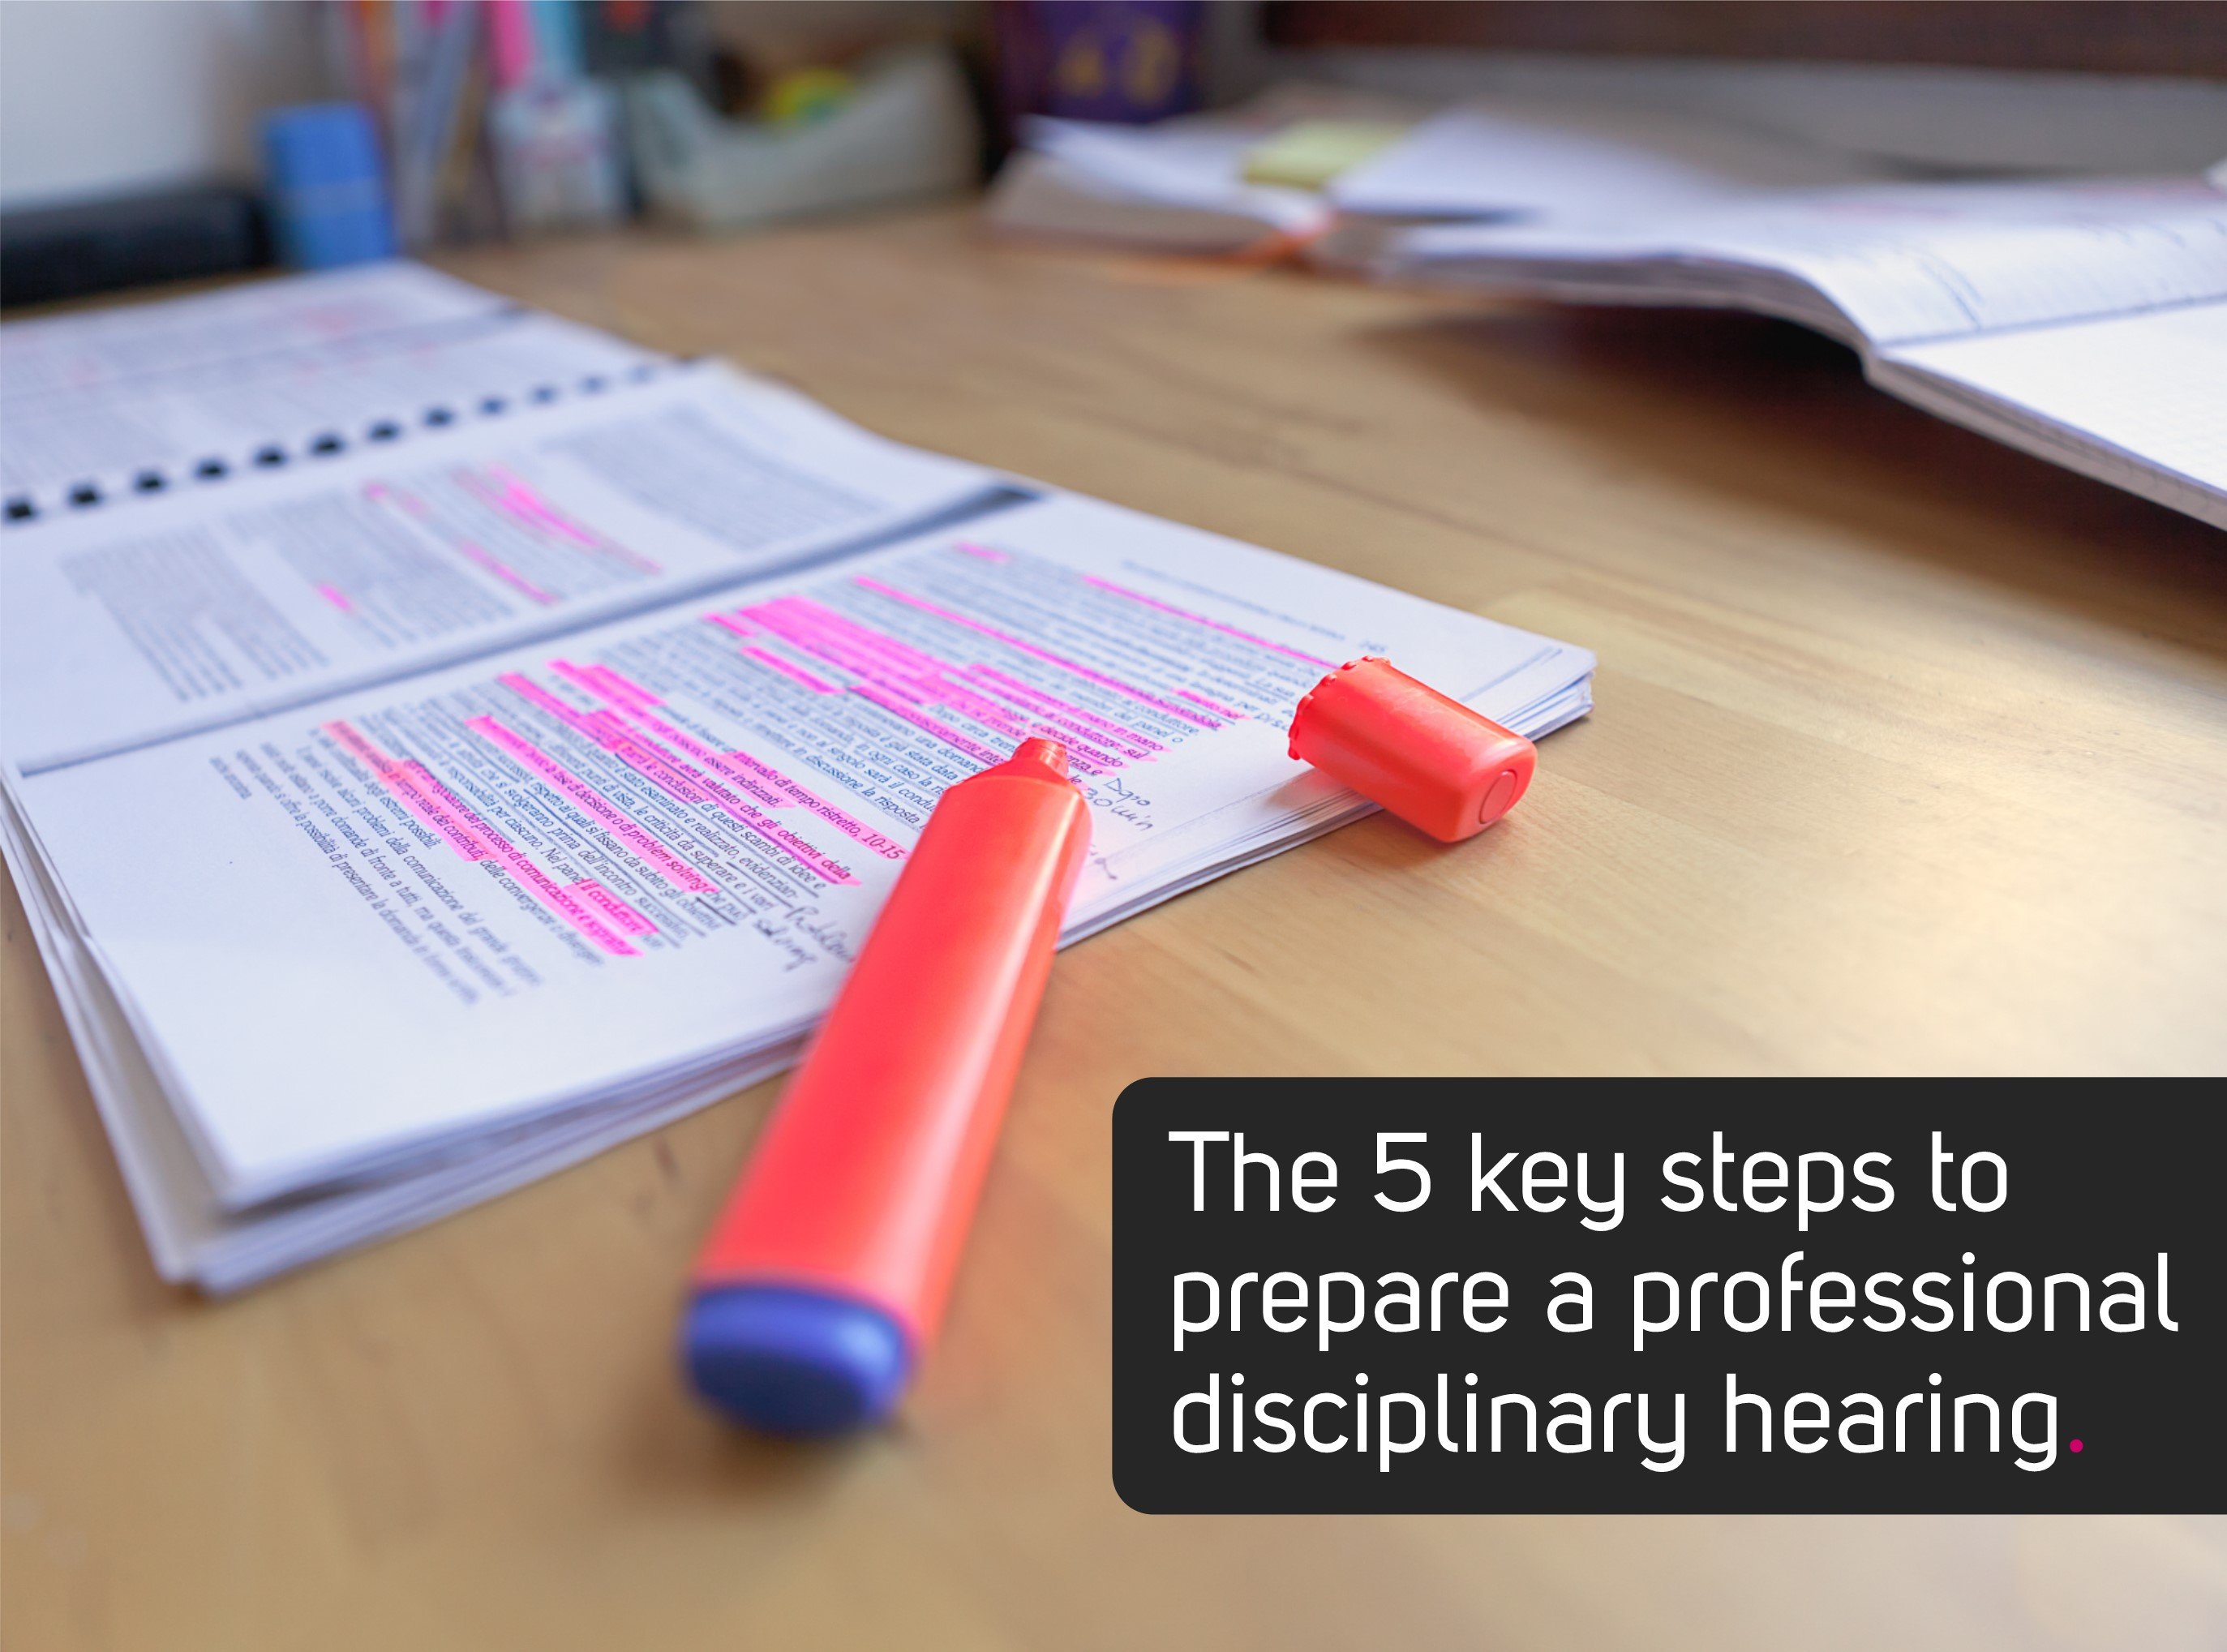 Preparing for a disciplinary hearing